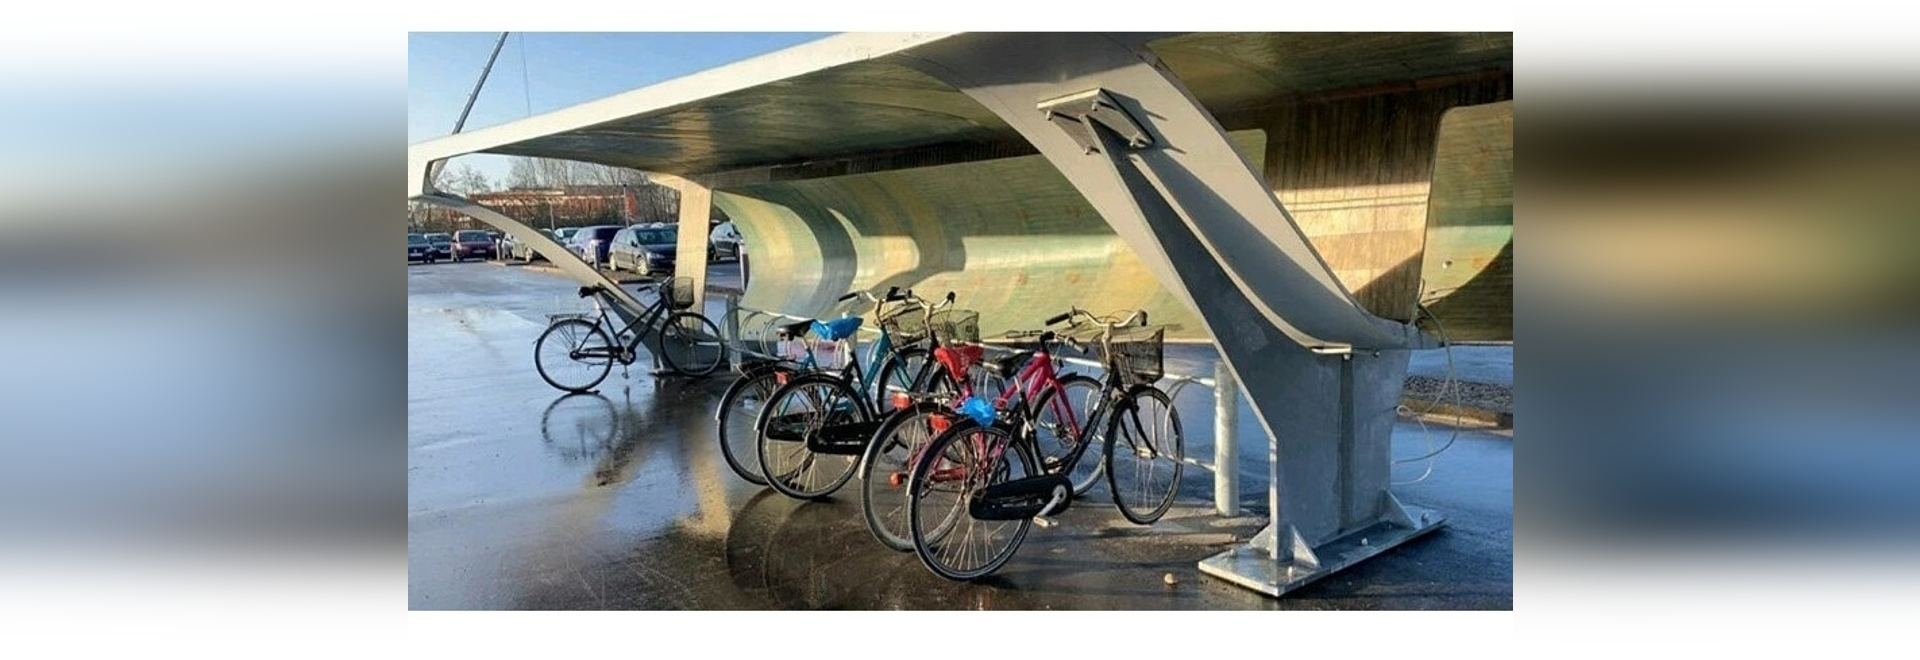 a wind turbine blade has been repurposed as a bicycle parking spot in aalborg, denmark  image courtesy of chris yelland